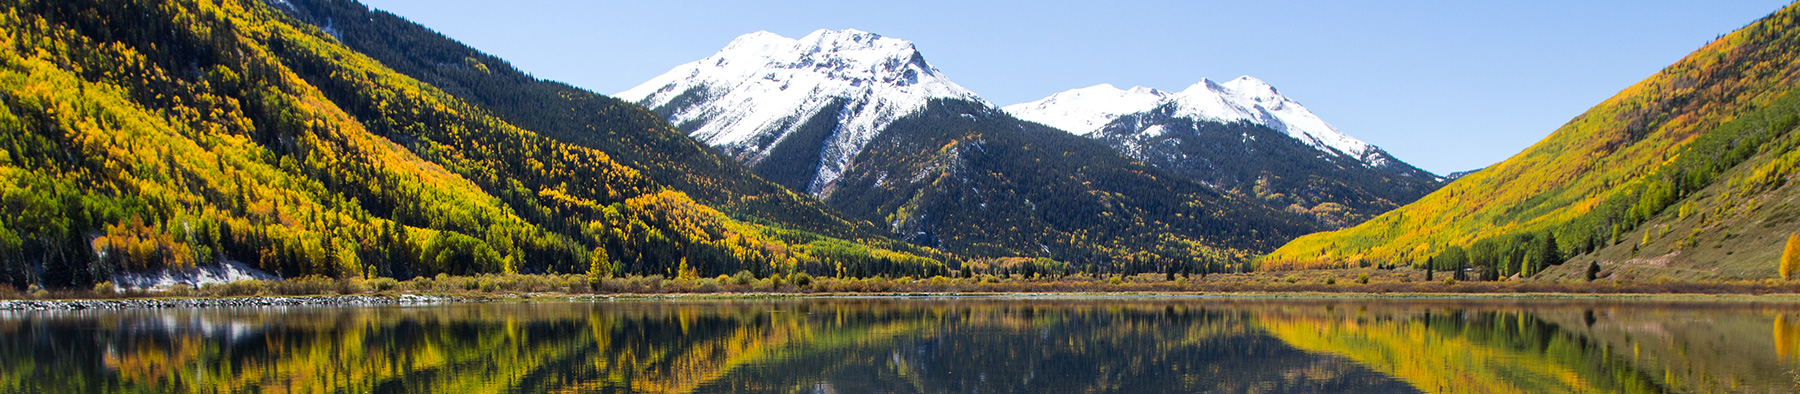 Mountain and Lake in the Front Range area of Colorado